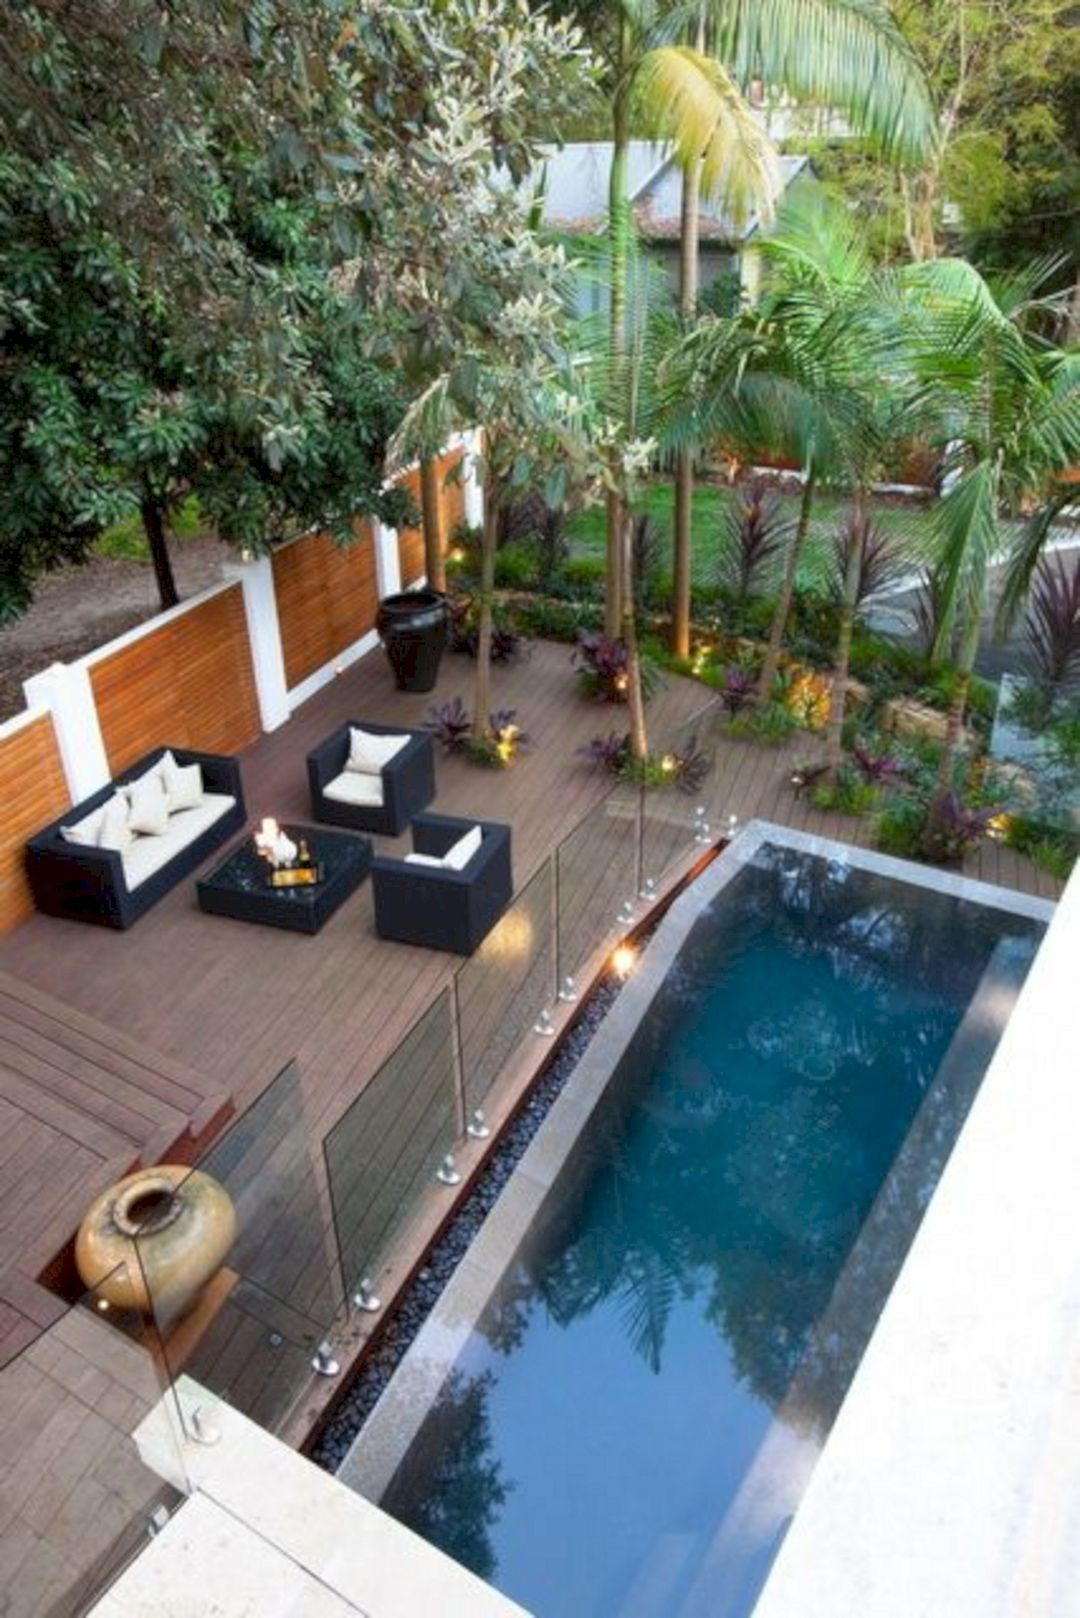 Outstanding 25 Beautiful Home Sitting Area Design Ideas For Your Relaxing Place Https Decoor Net 25 Beautiful Backyard Pool Pools Backyard Decor Small Pools